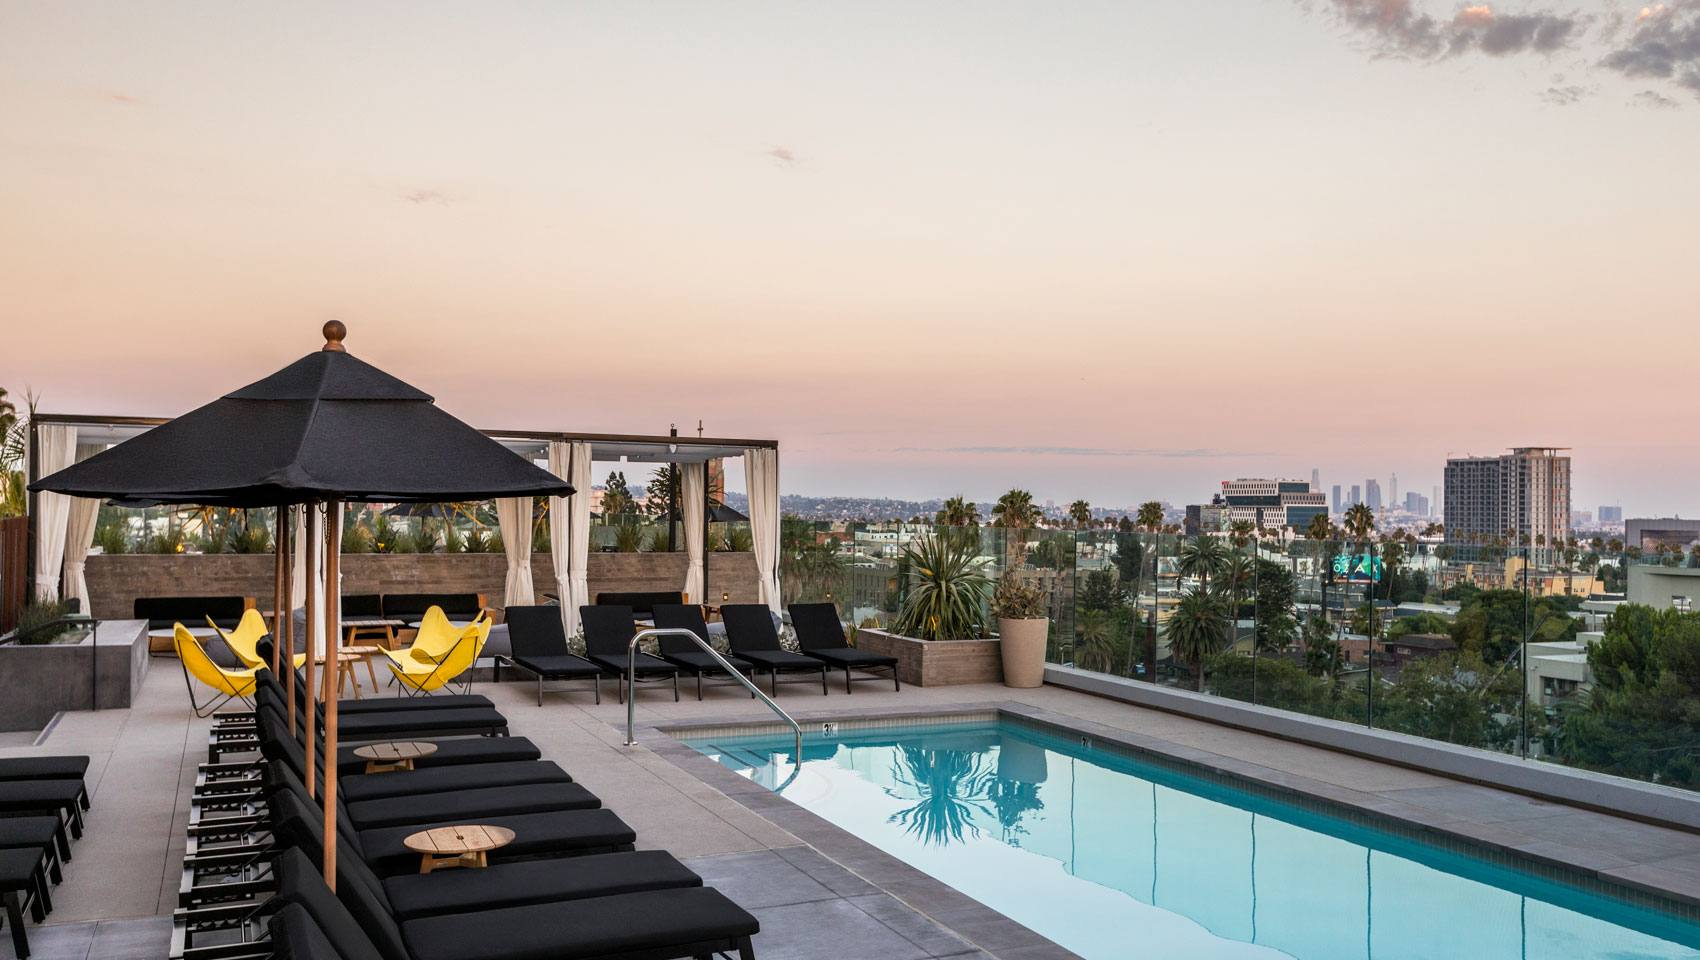 Rooftop Pool at Kimpton Everly Hollywood - los angeles event spaces